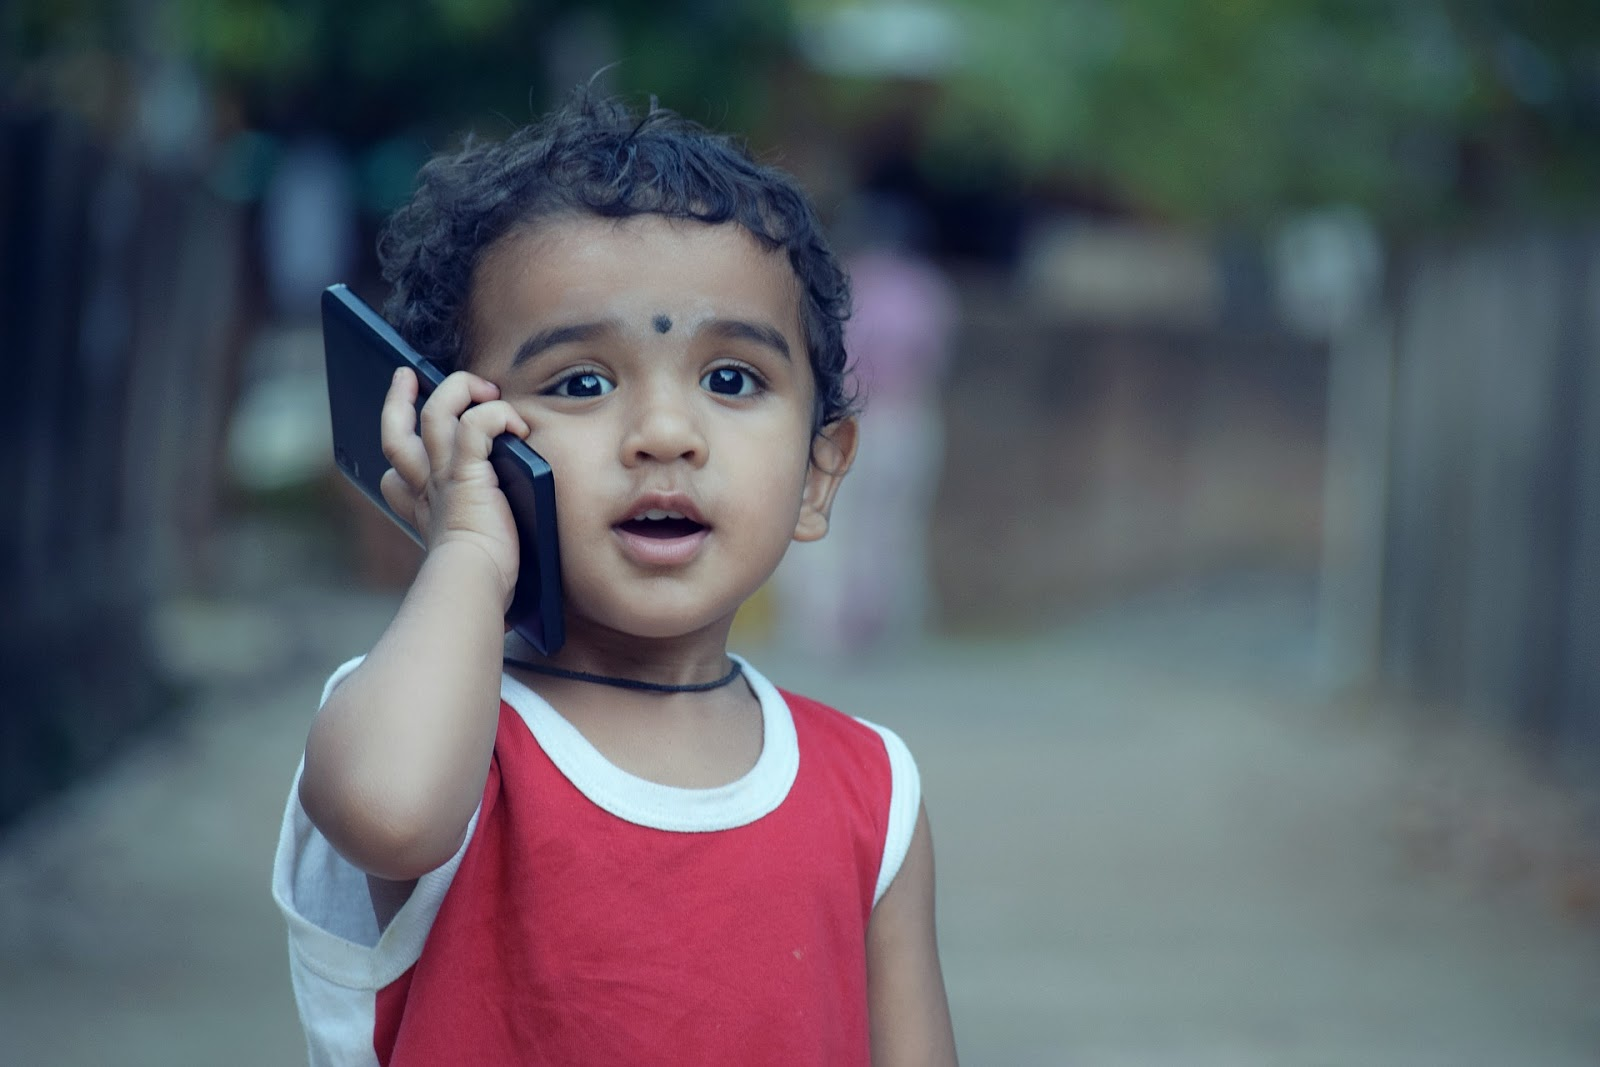 A child (2-4 years) holding a cell phone.